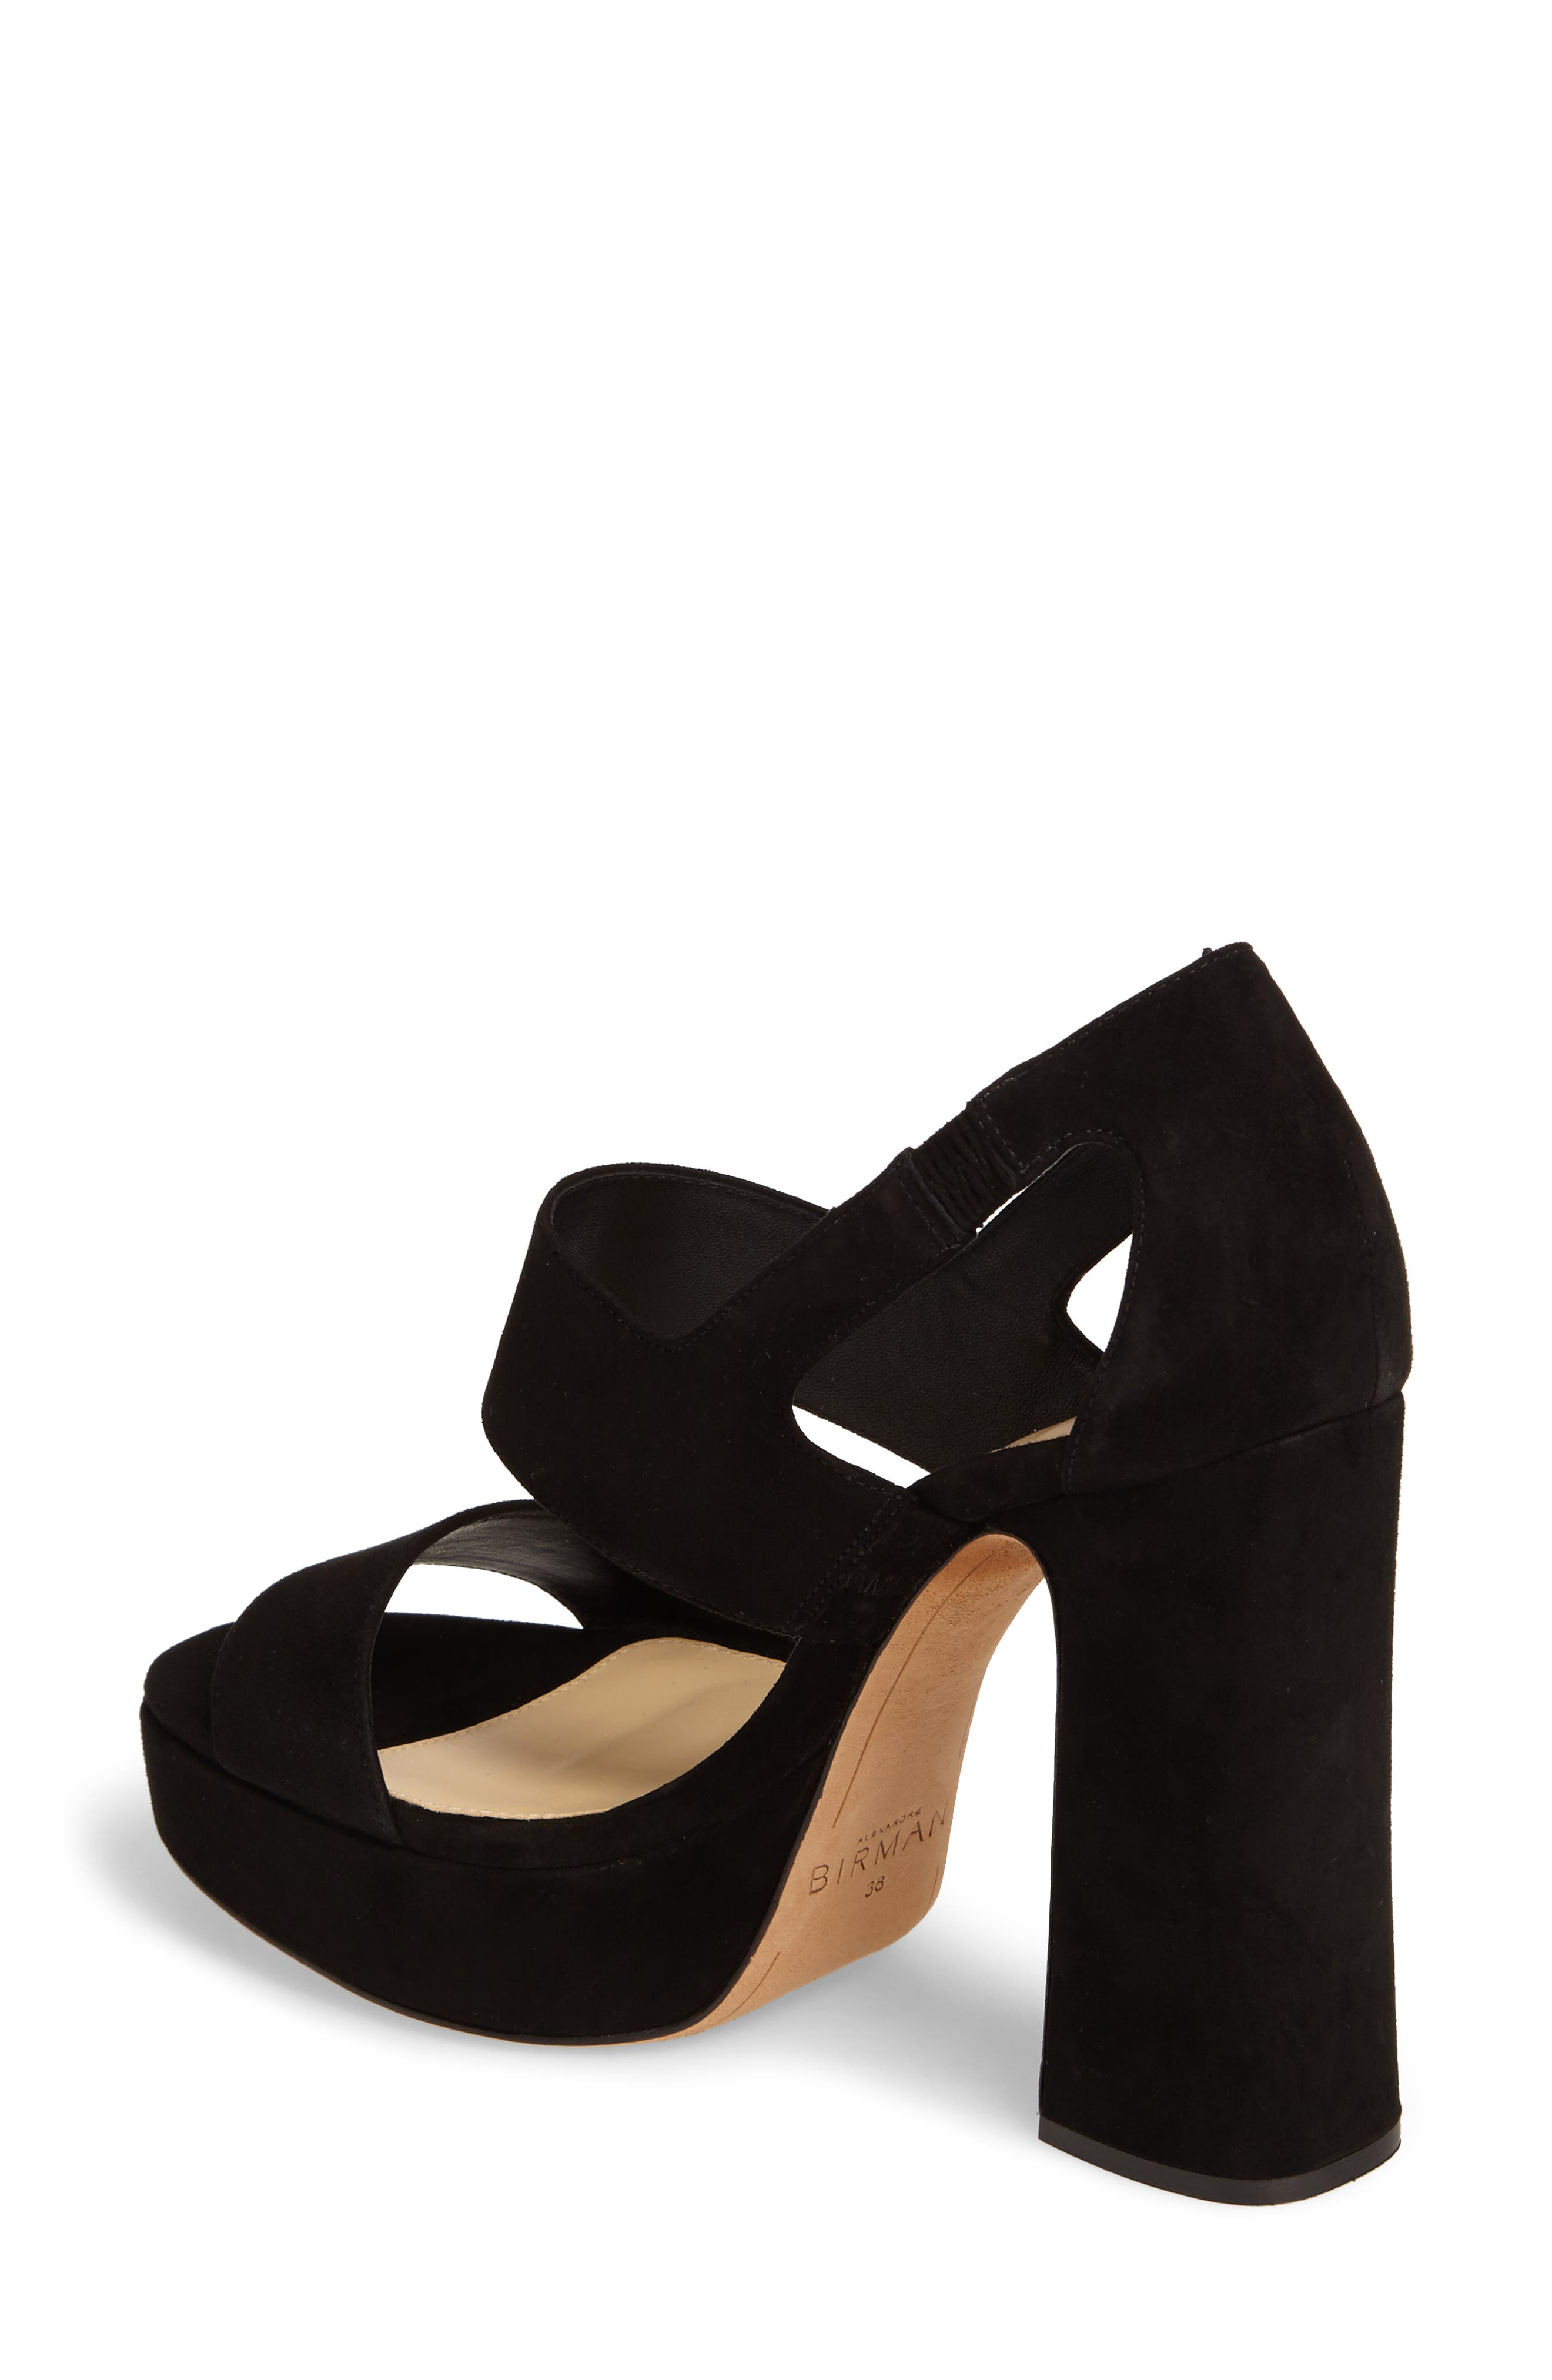 Elouise Platform Sandal,                             Alternate thumbnail 2, color,                             001